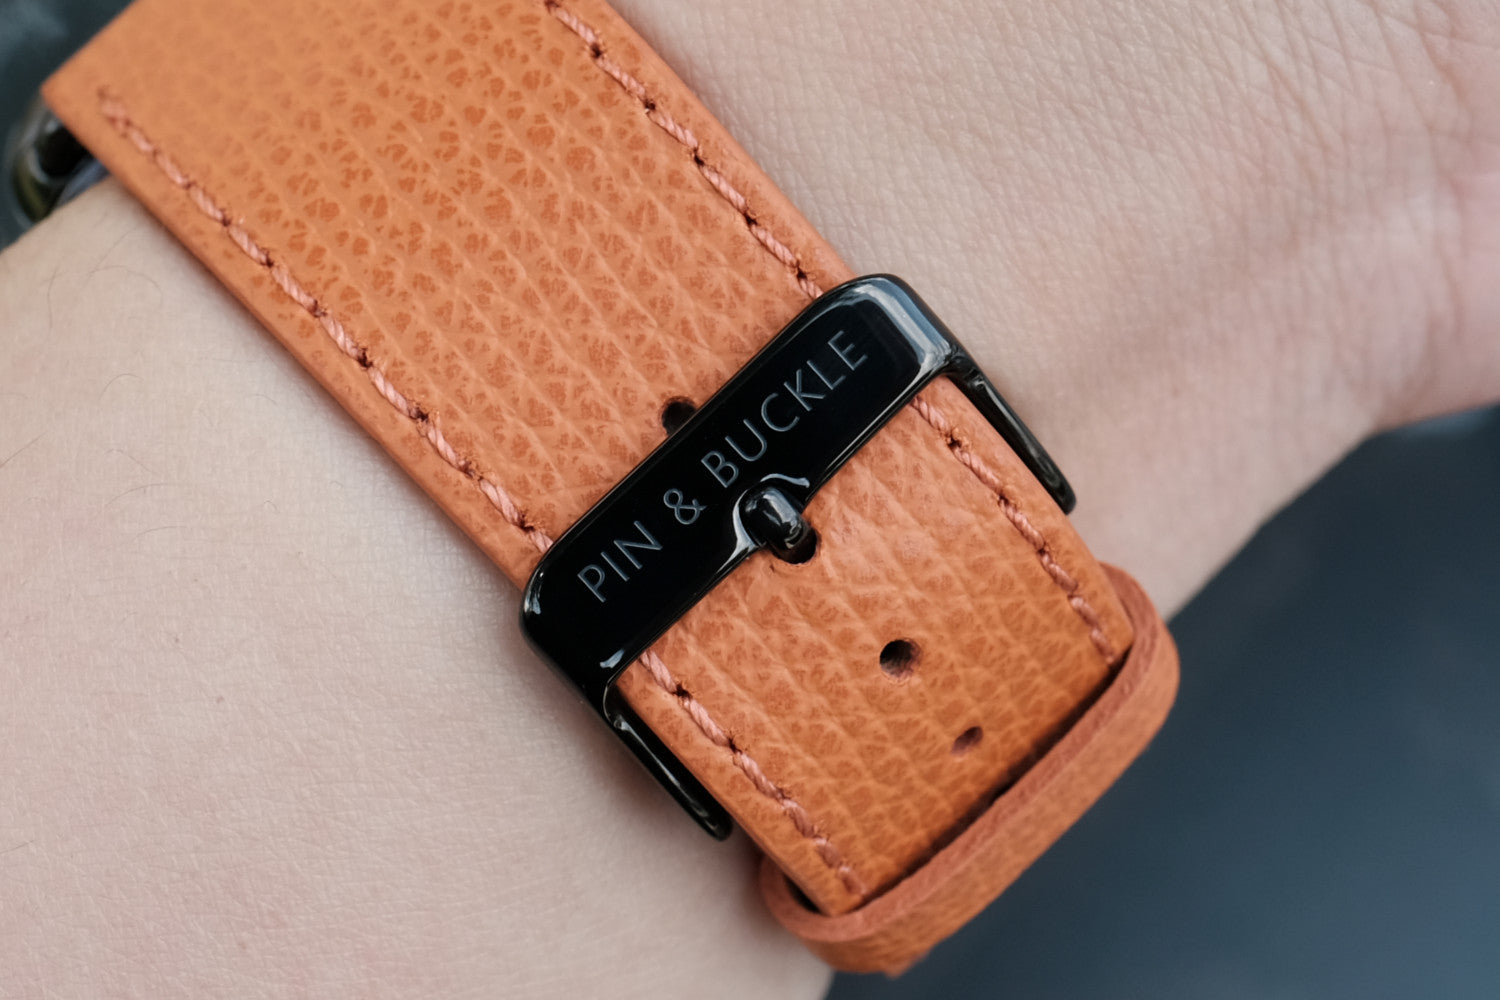 Pin and Buckle Apple Watch Bands - Epsom - Leather Apple Watch Band - Royal Orange - Polished Stainless Steel Buckle